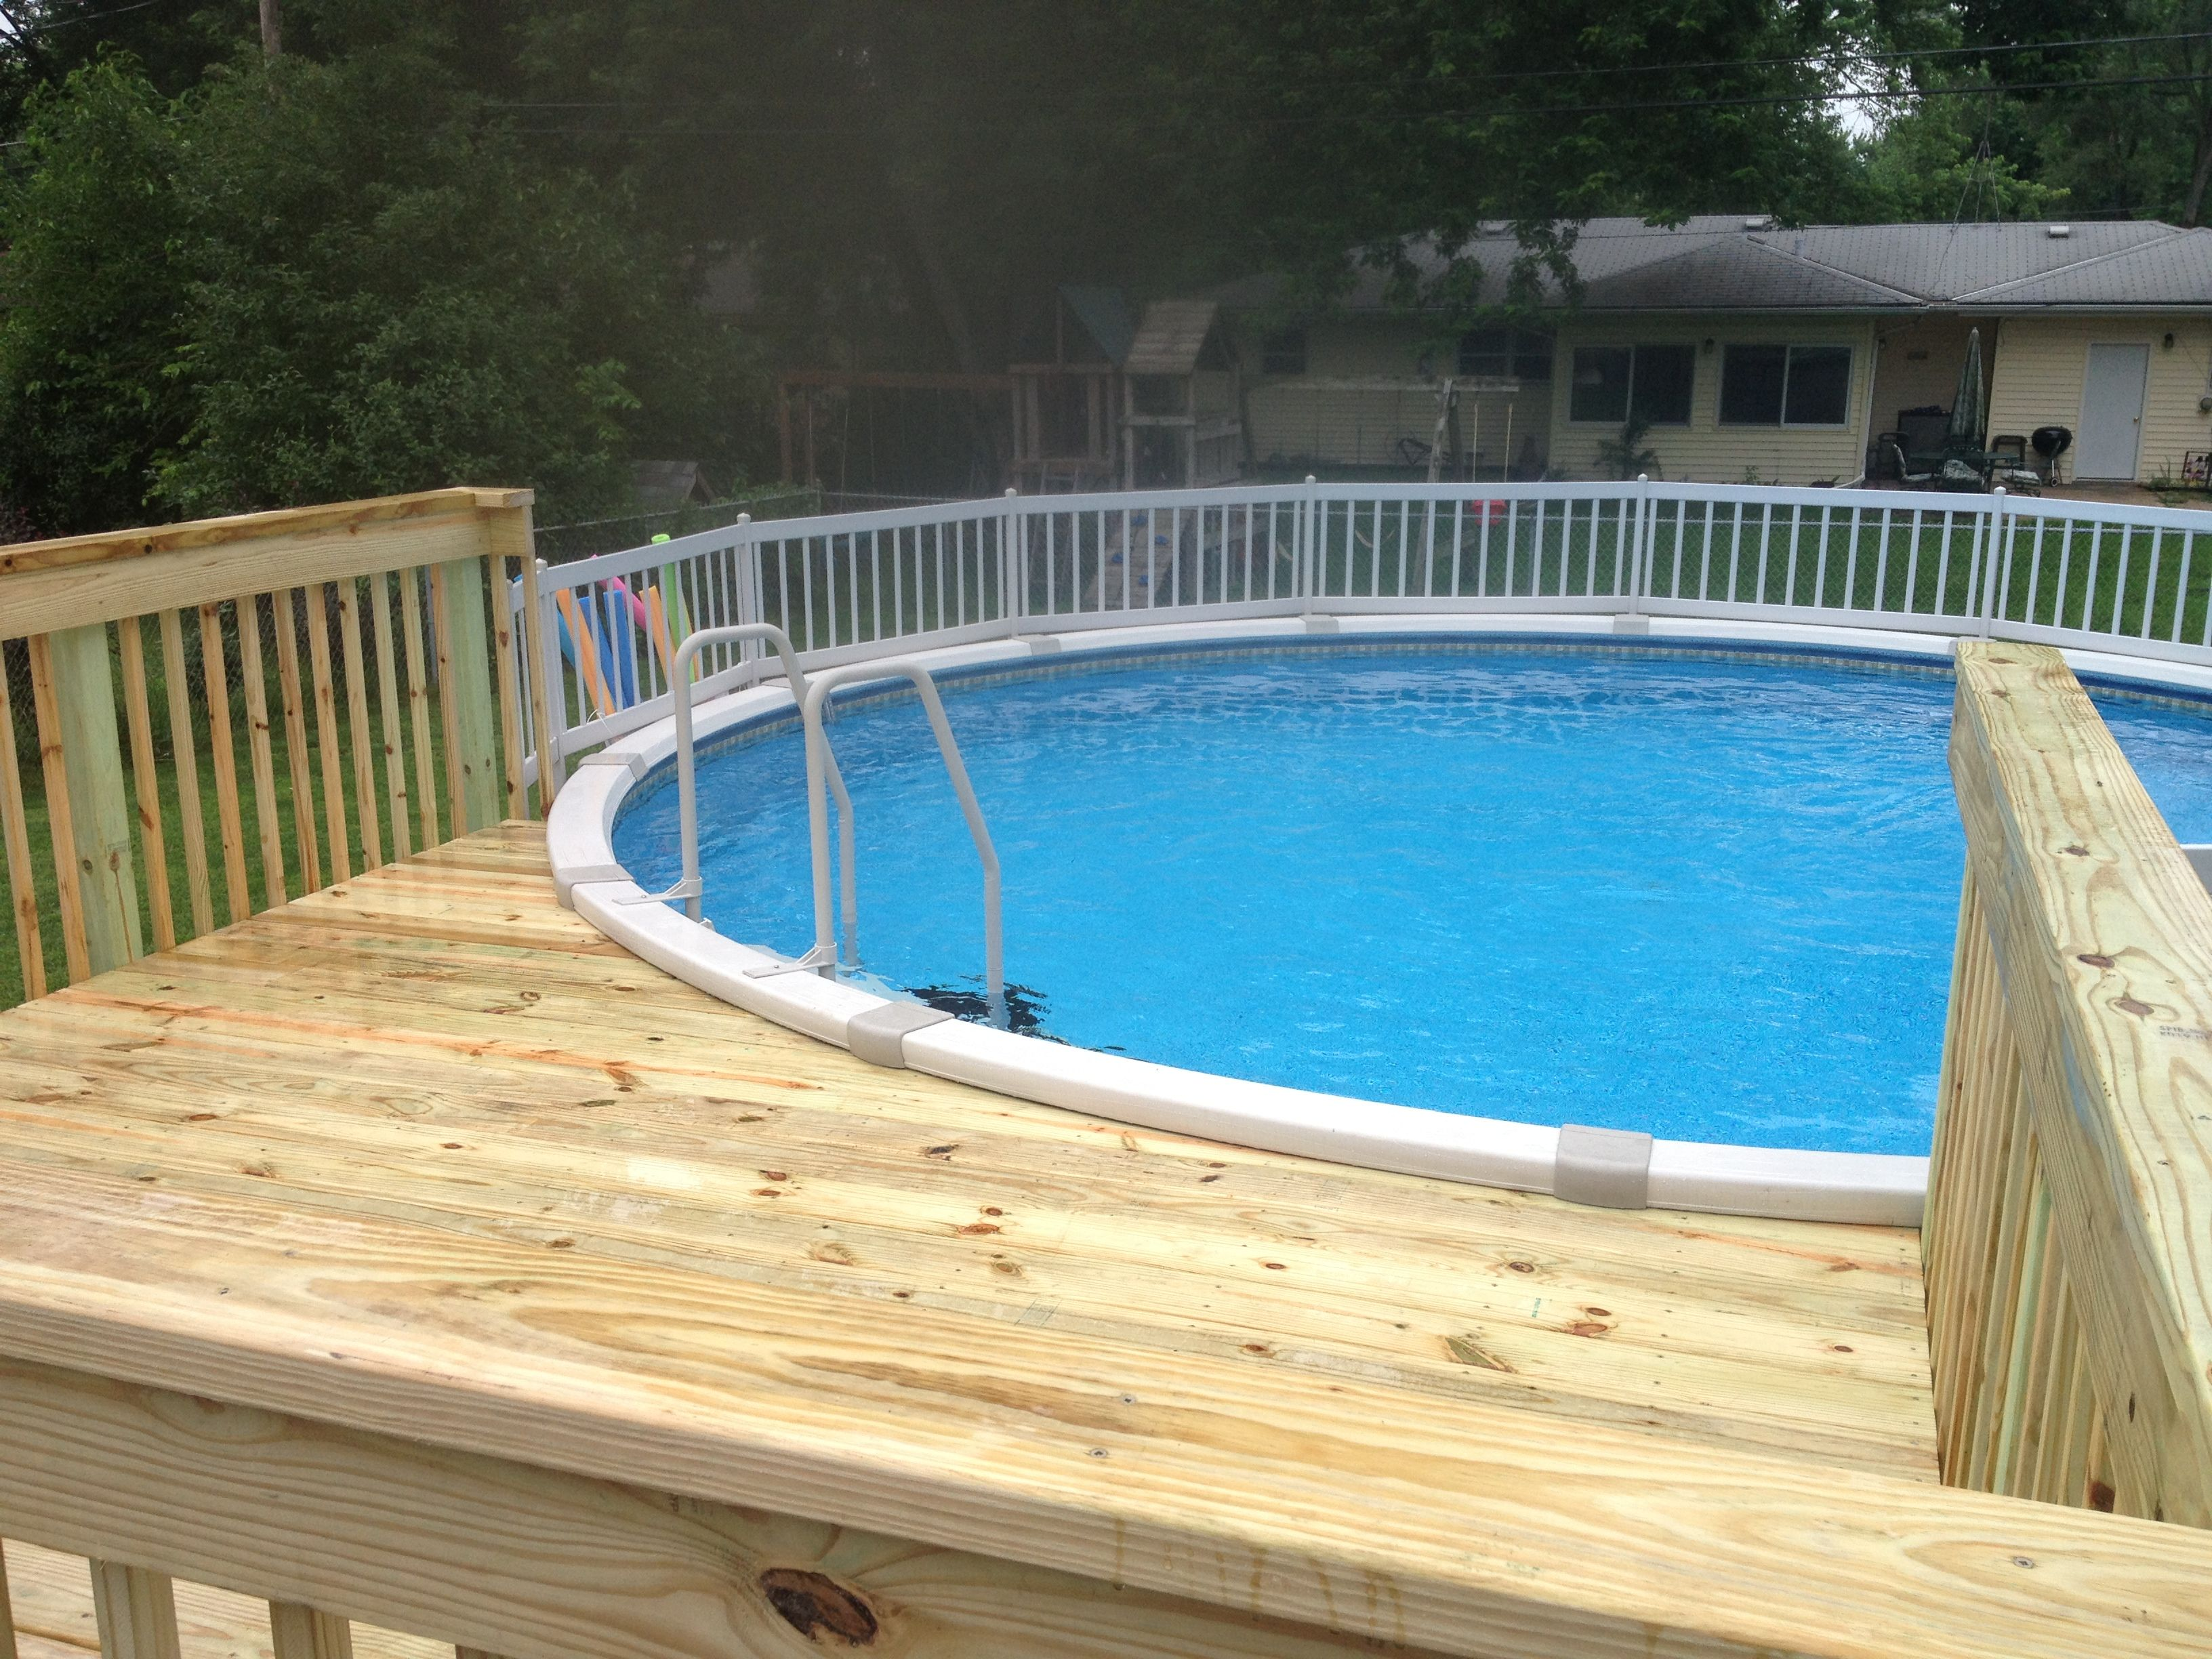 Decks for above ground pools home decor above ground